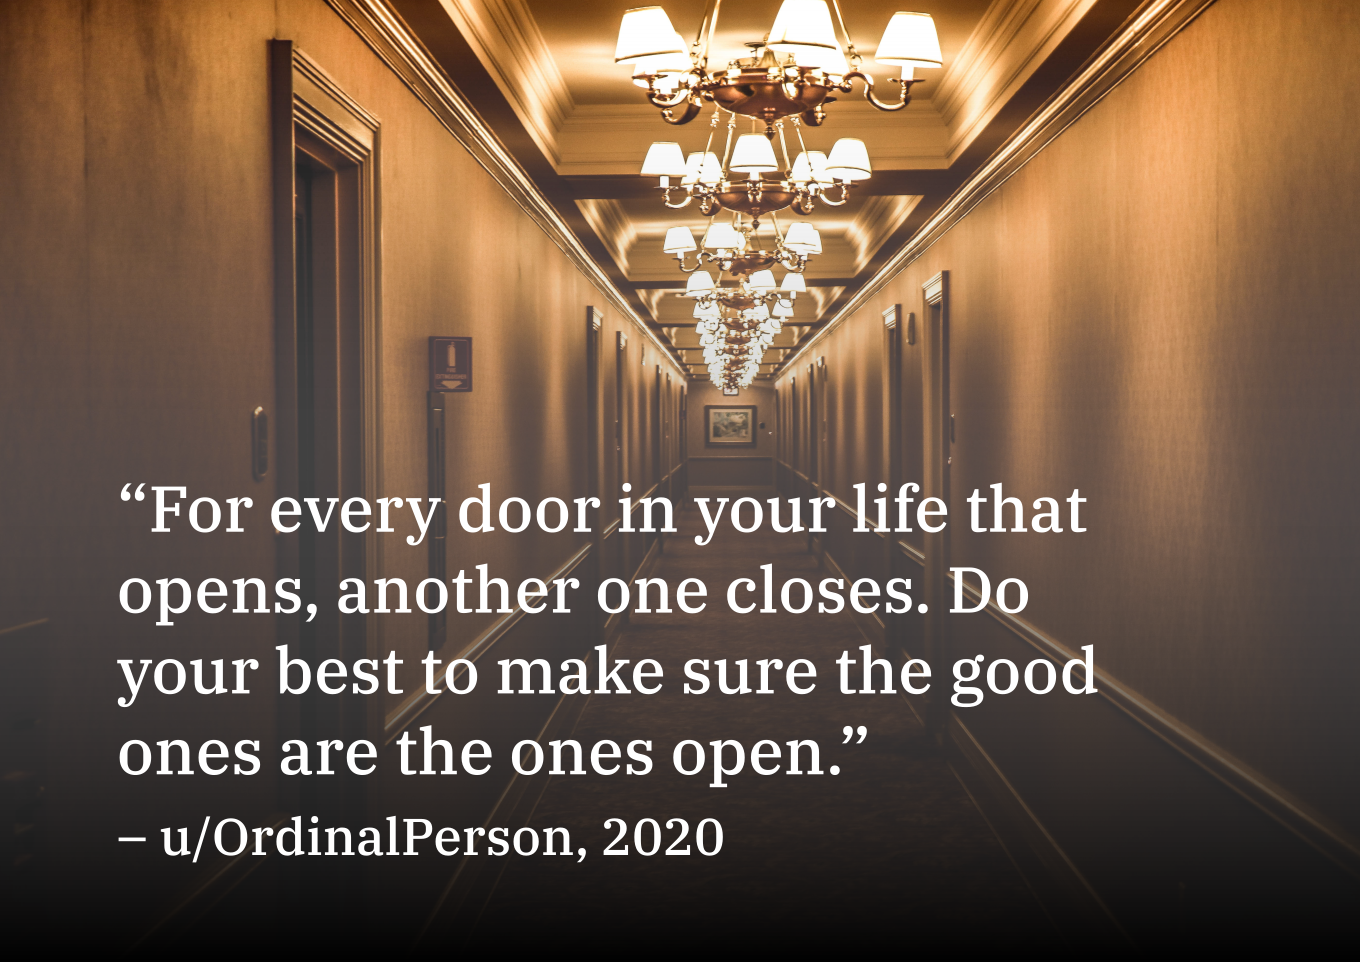 """For every door in your life that opens, another one closes. Do your best to make sure the good ones are the ones open."" – u/OrdinalPerson [OC] [1360×962]"